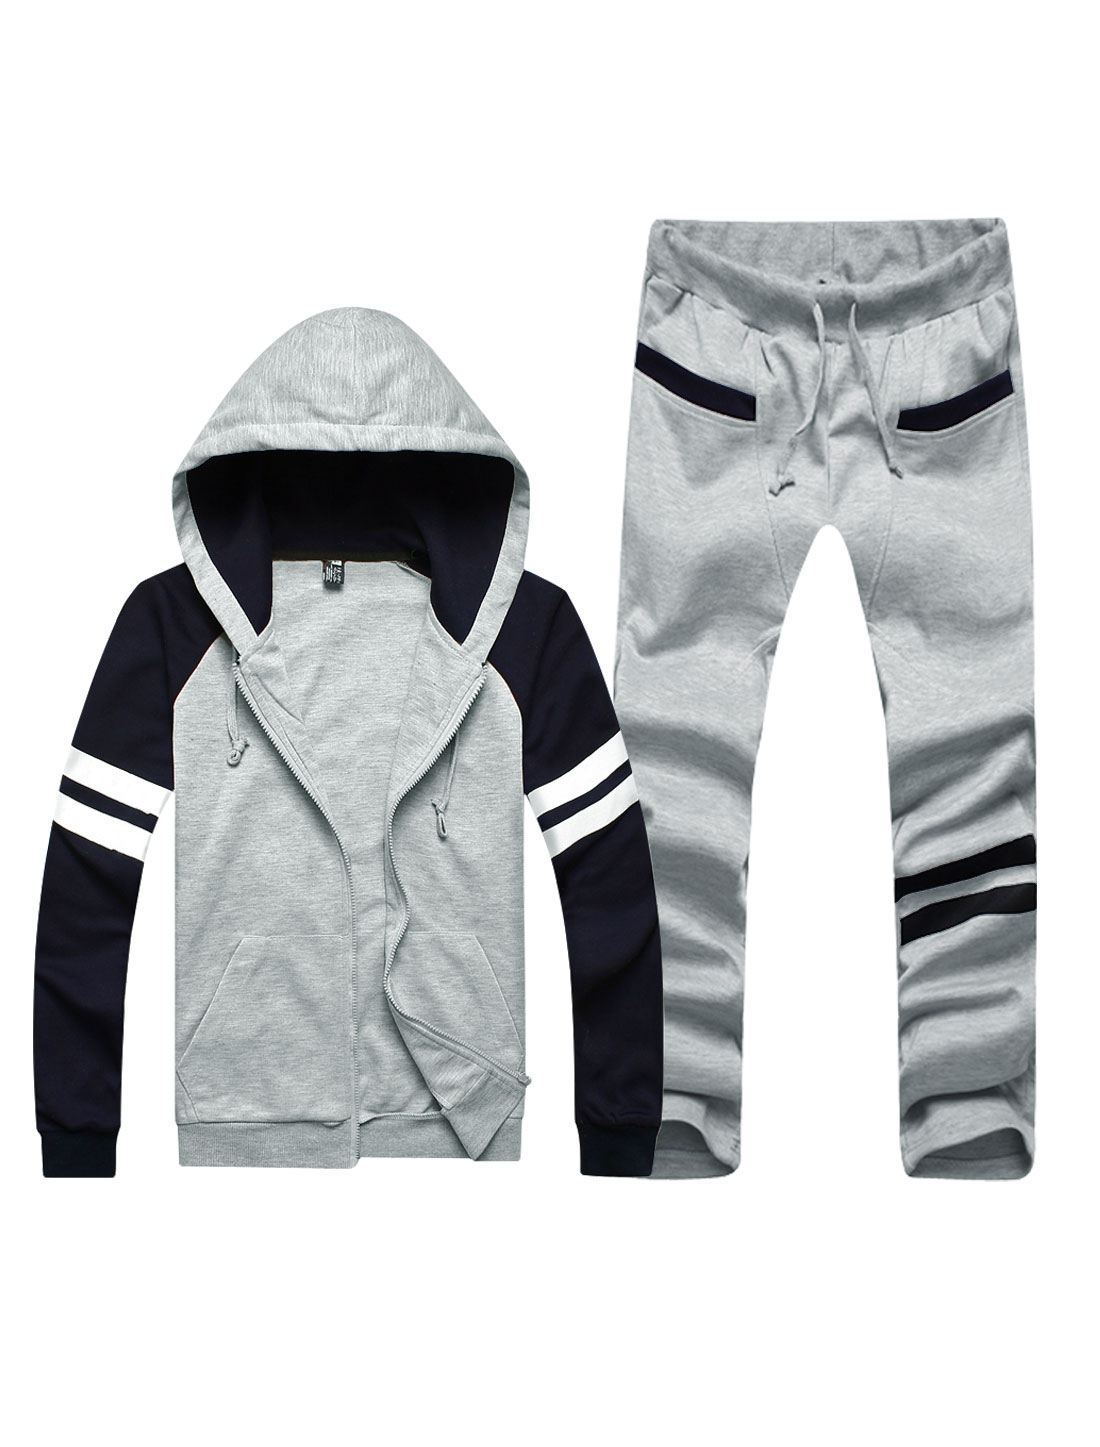 Men Hooded Long Raglan Sleeve Sweatshirt w Stripes Detail Pants Light Gray S